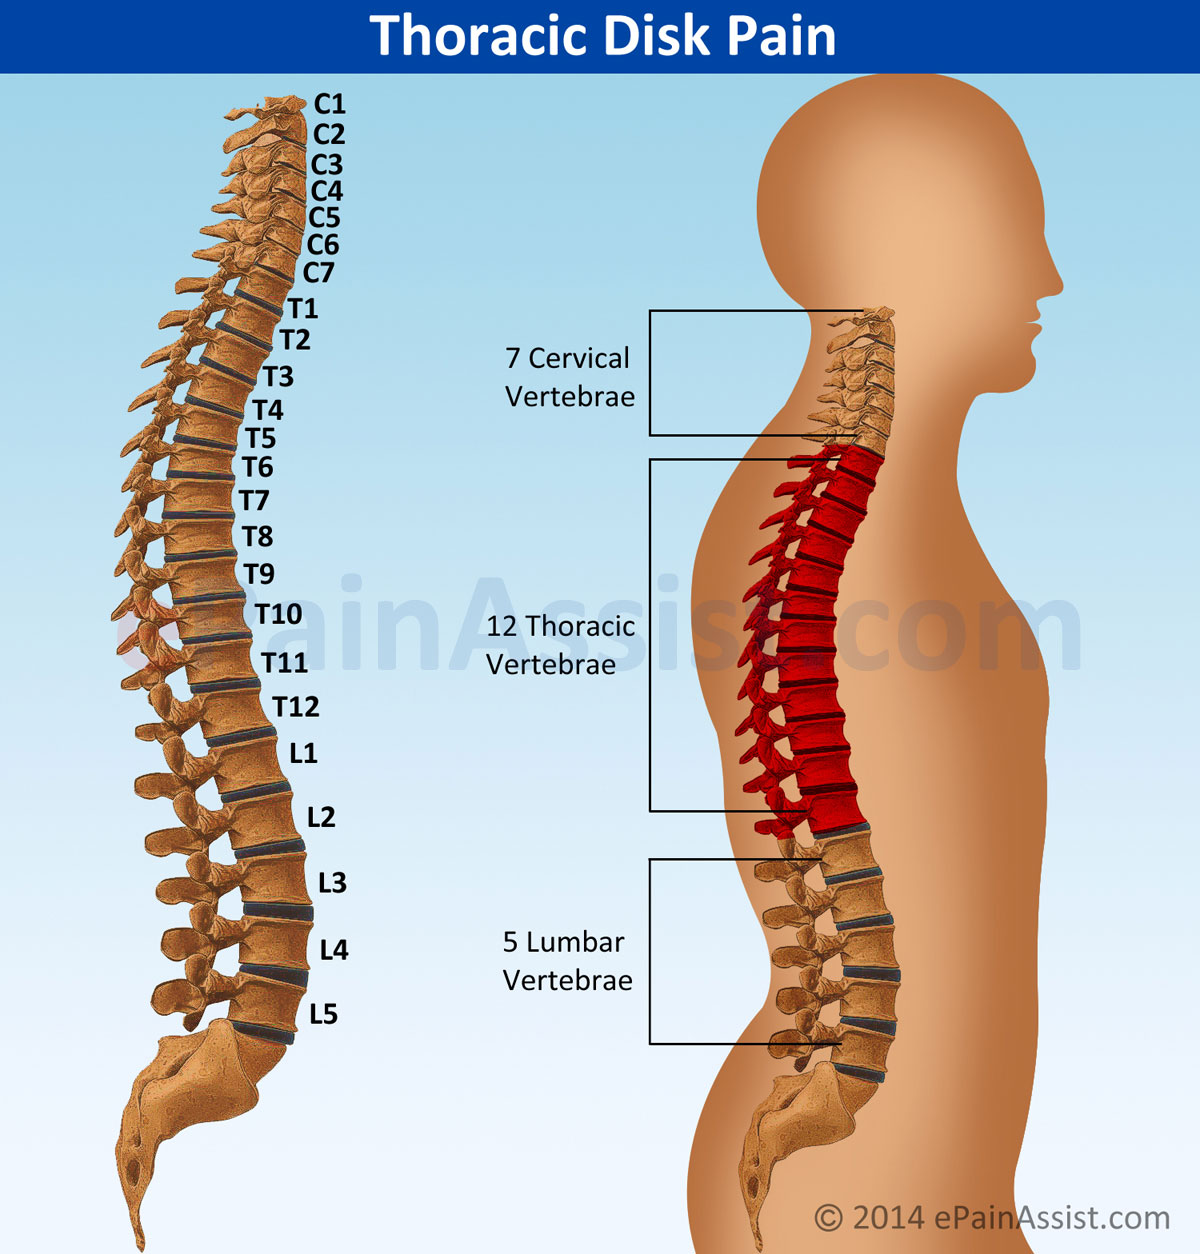 Thoracic Disk Paintypessymptomstreatment Epidural Steroid